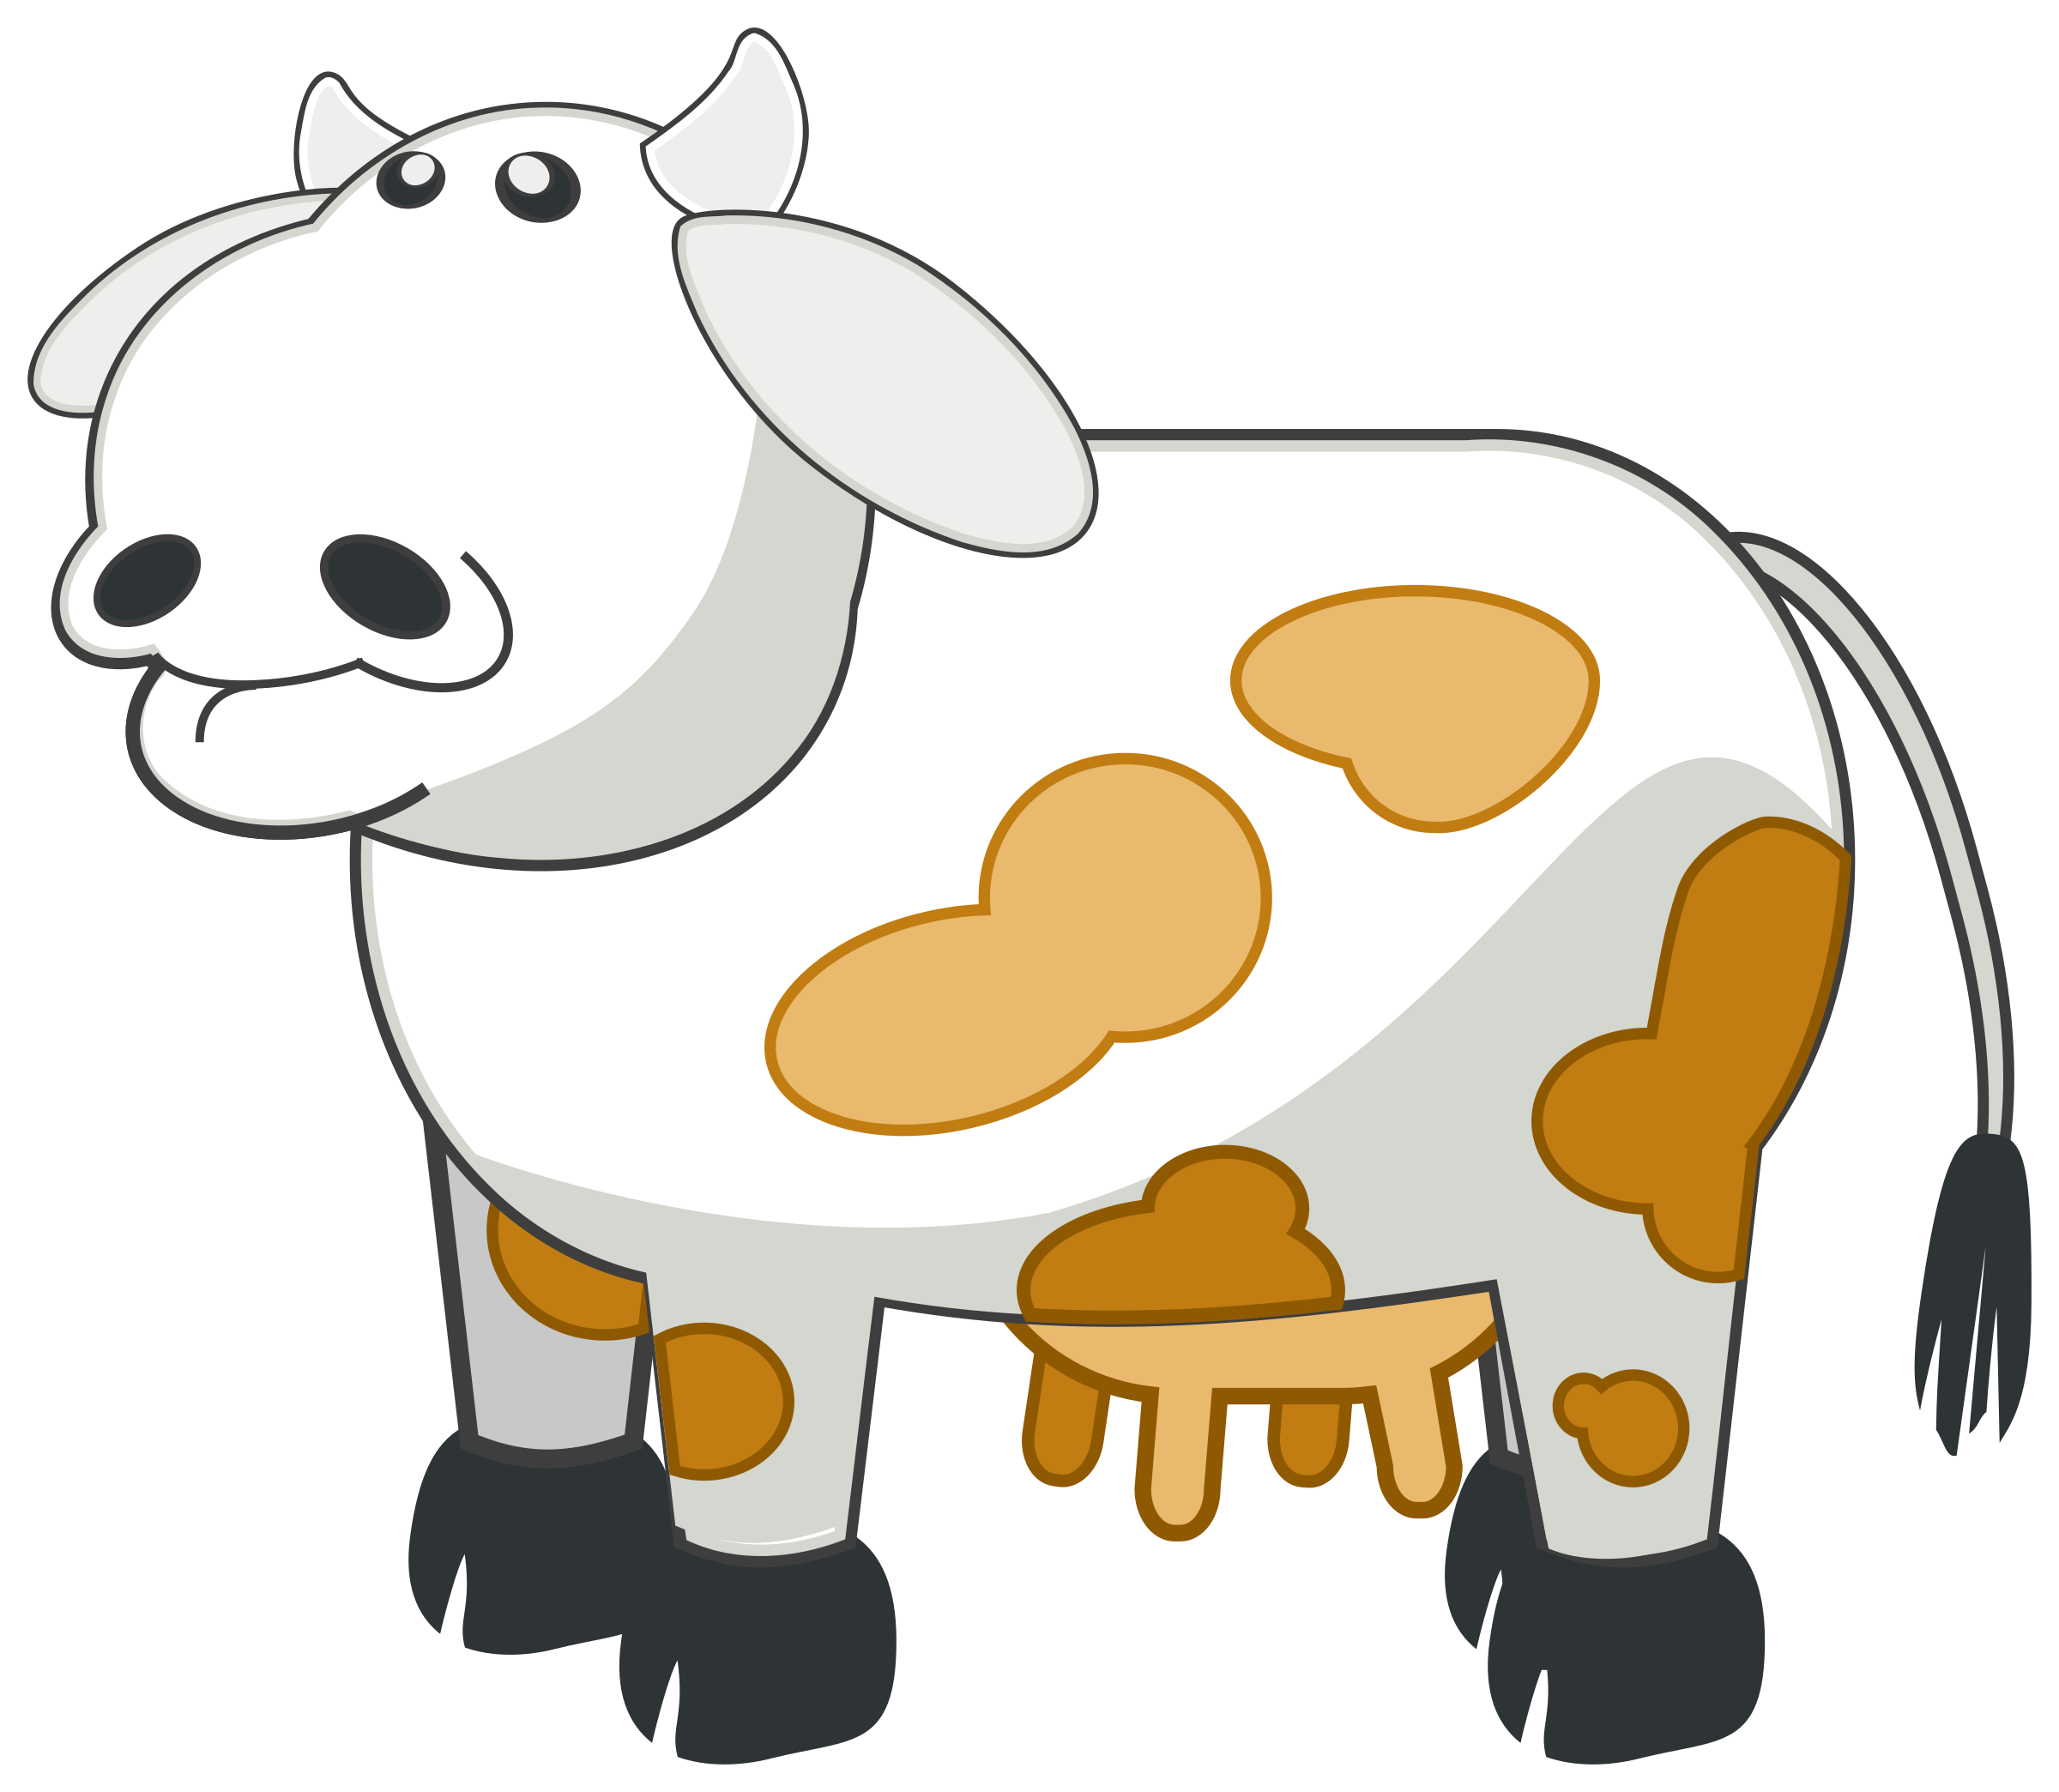 Animal farm book images clipart picture free library Clipart - Colour Cow 3 picture free library